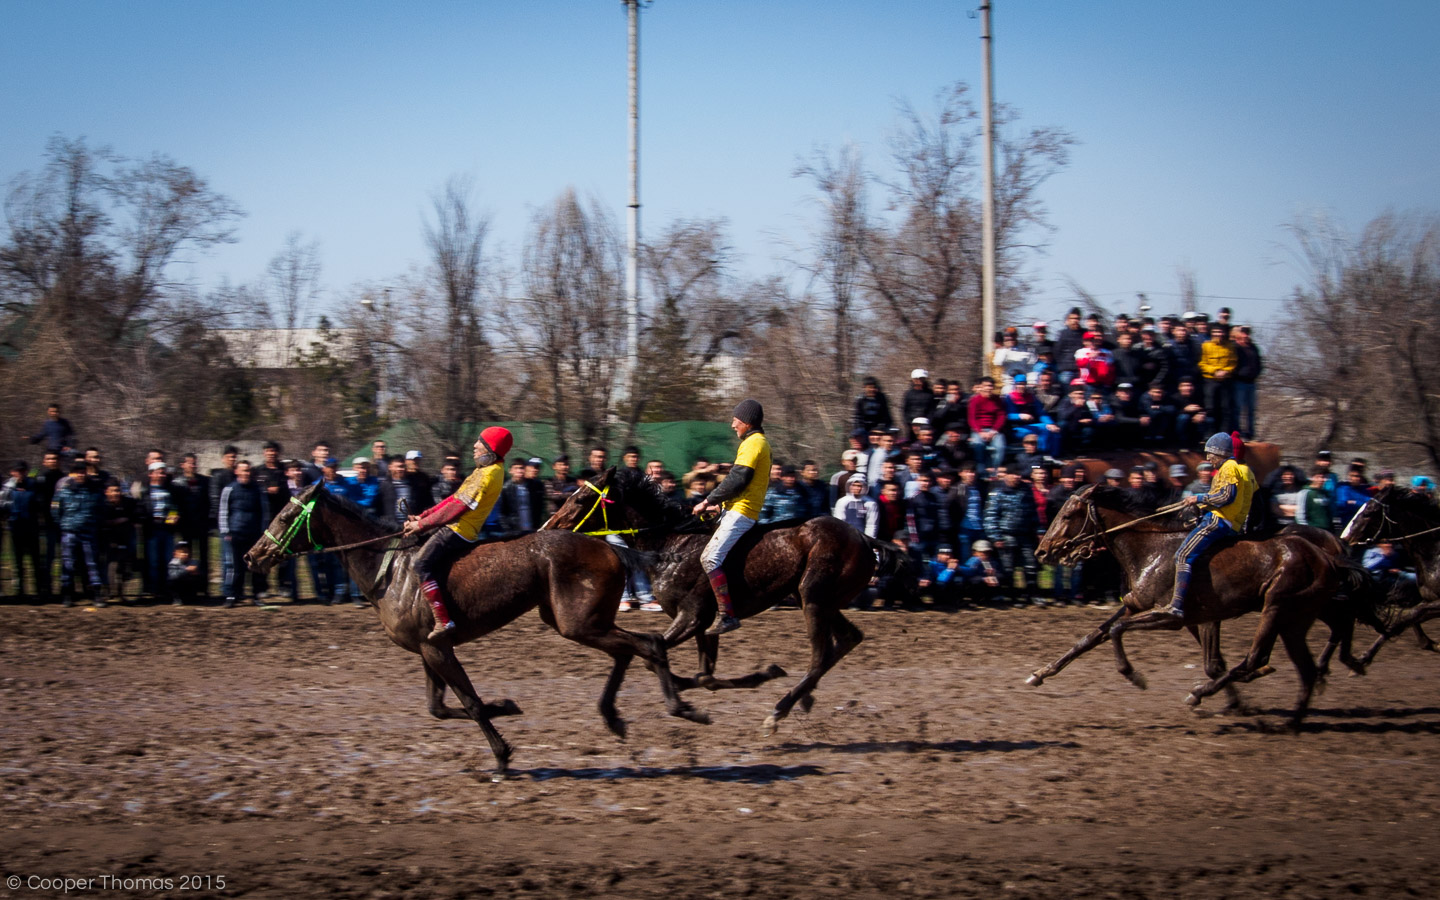 Young riders struggle to control their horses in the first race of the day